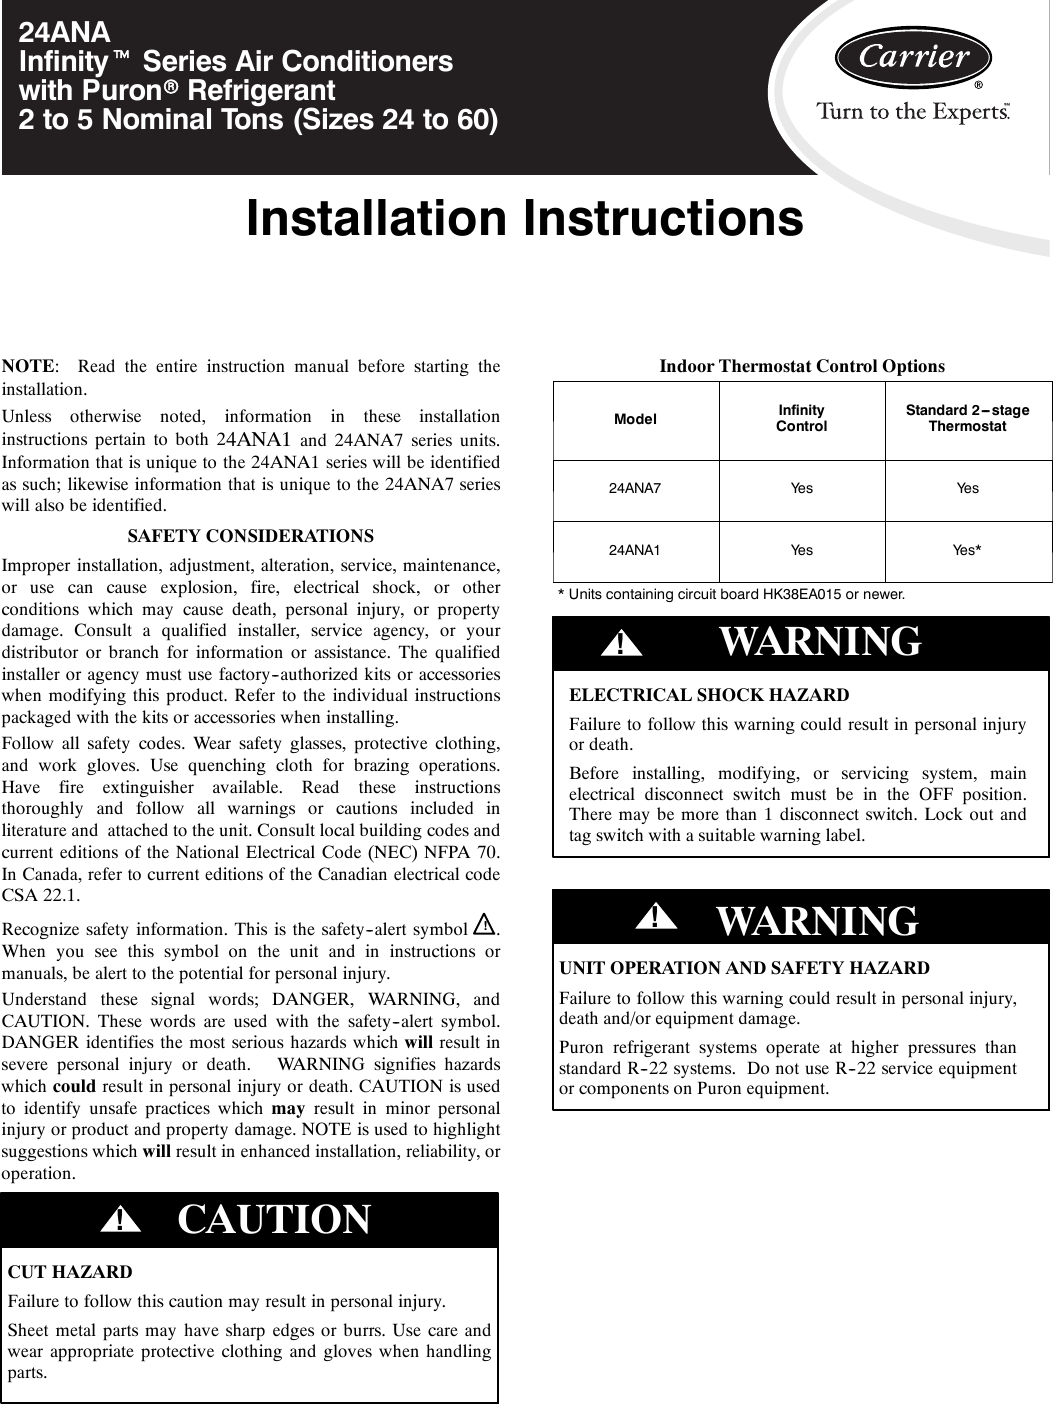 Carrier 24ANA 6SI User Manual To The 7a7ec158 2c58 4274 b34e